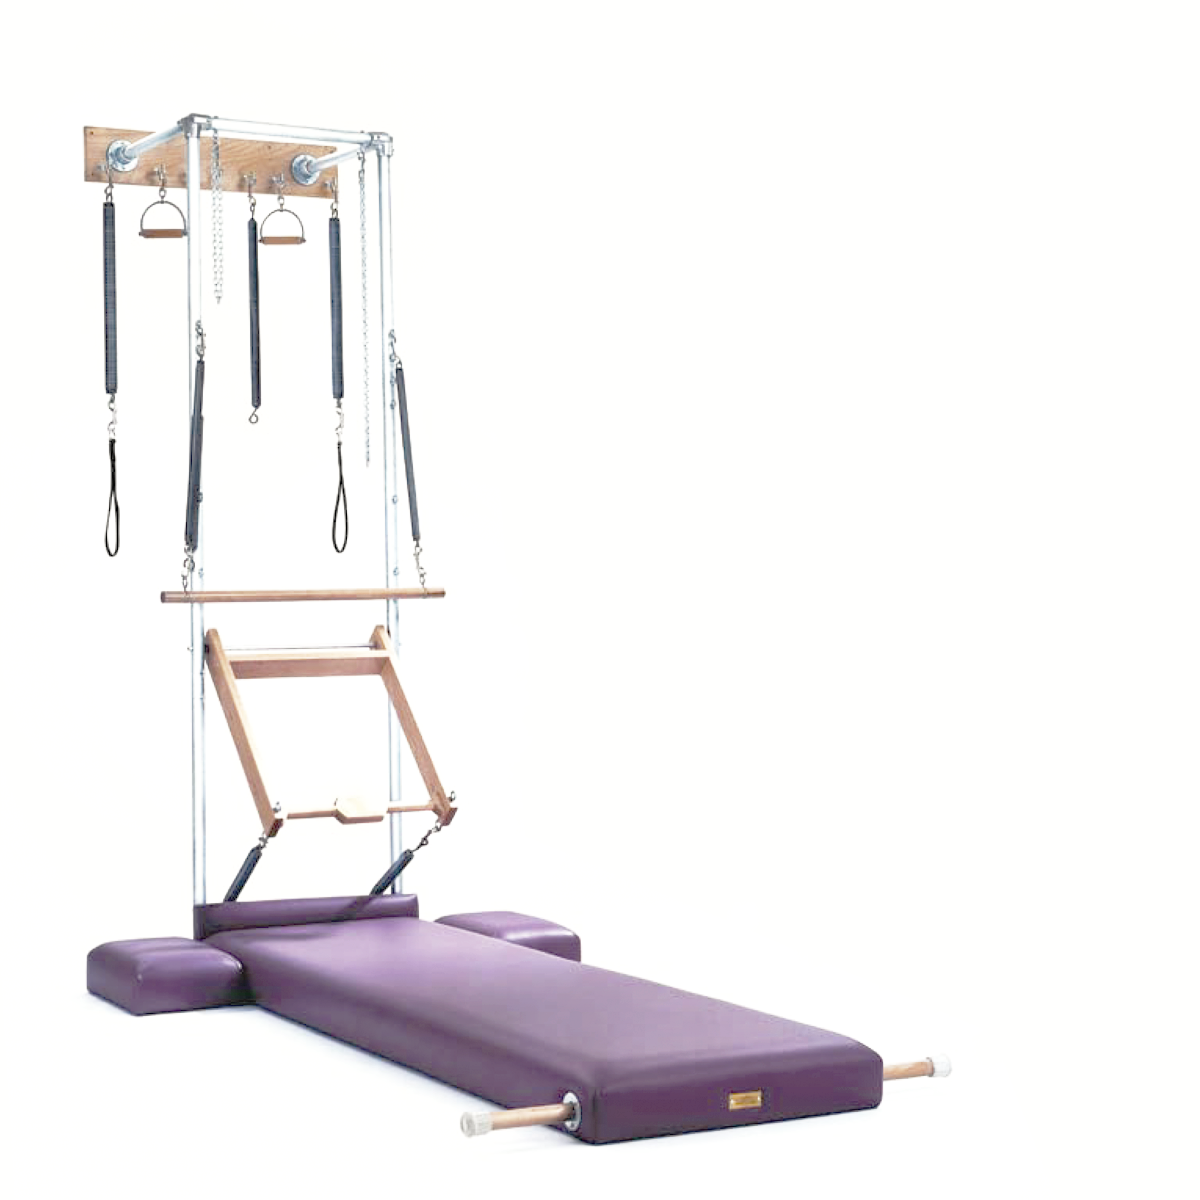 Gratz_Pilates_Studio_Wall_Unit_With_High_Mat_983cbaa9-9cb5-486e-a958-3d5f342dbd8d.png